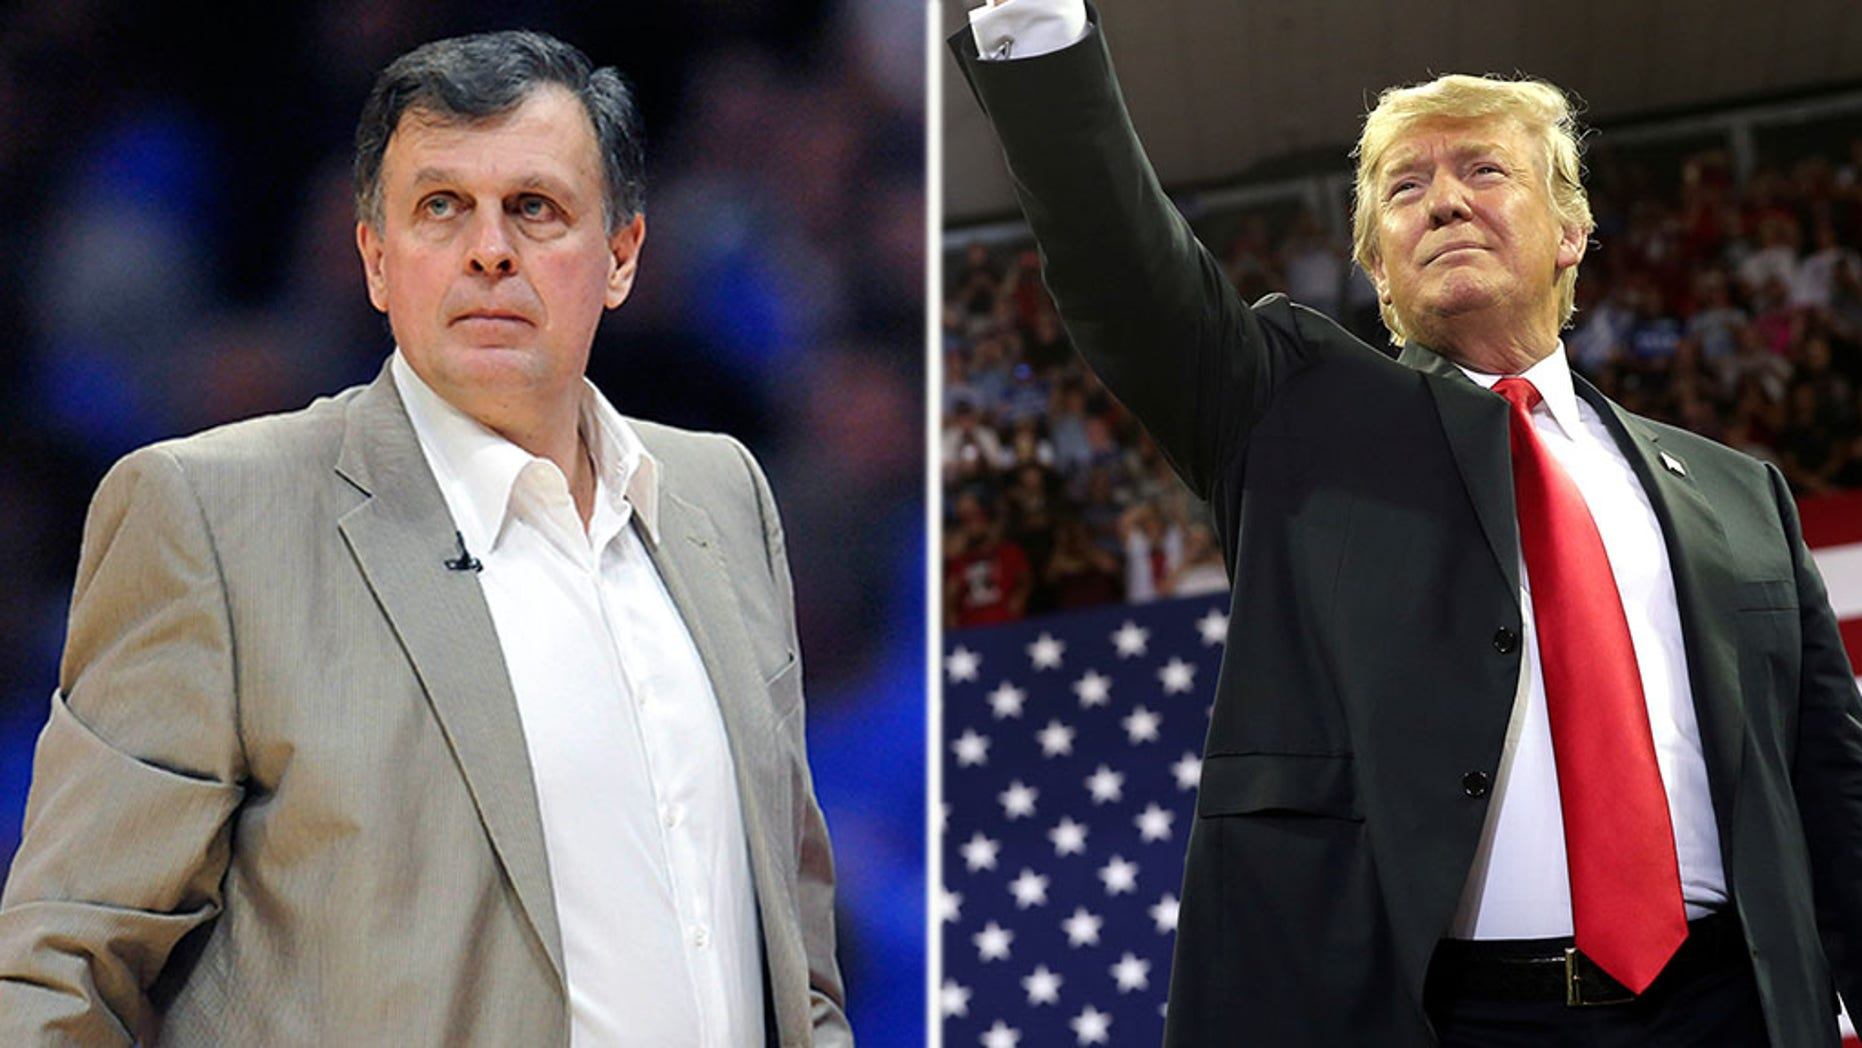 NBA Hall of Famer Kevin McHale is under attack by the left for possibly attending a Trump rally.